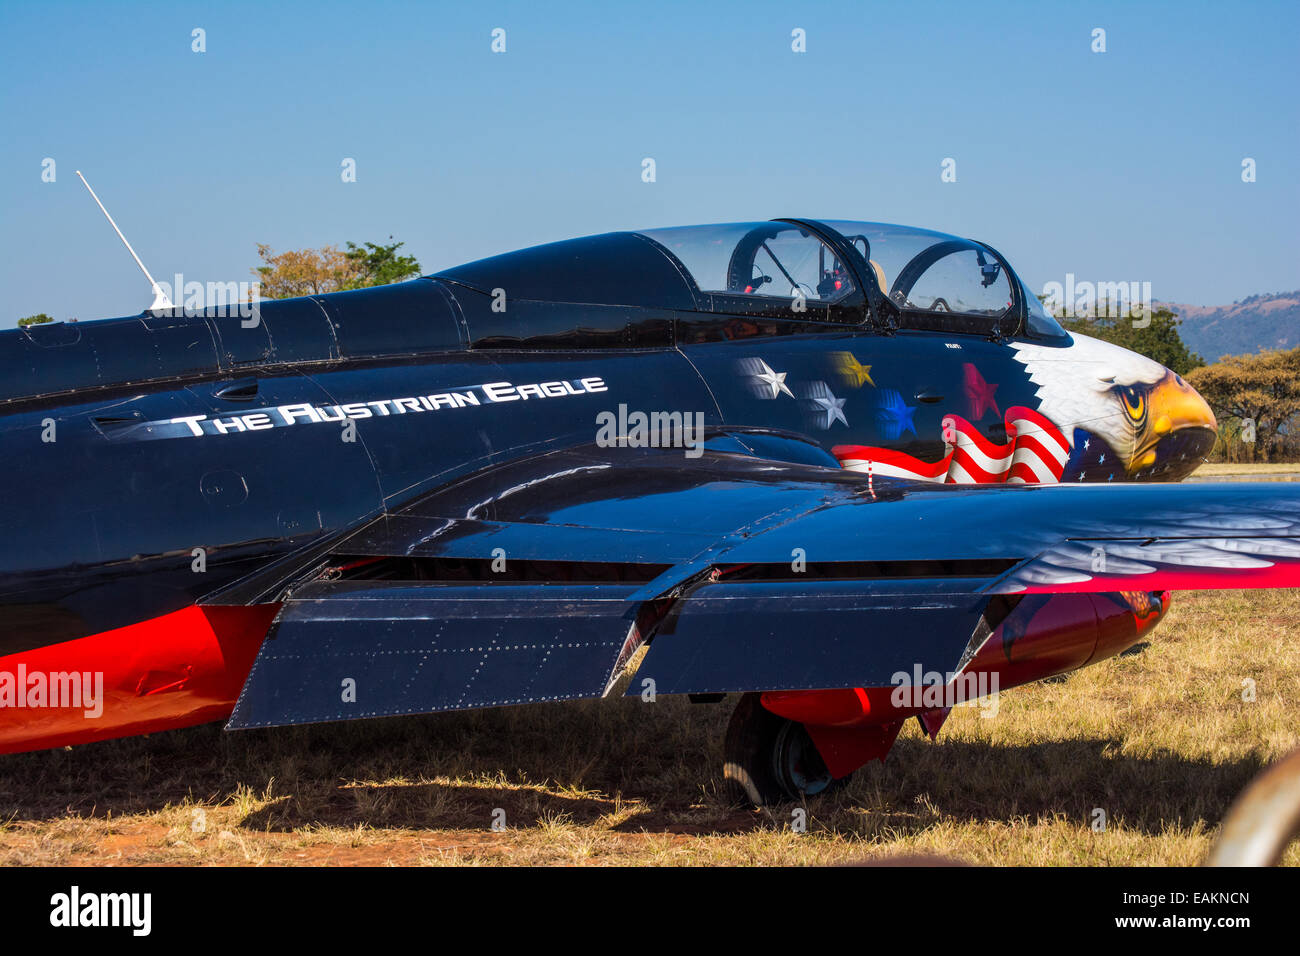 The Austrian Eagle Aero L-29 Delfin at the Lowveld Air Show with a puncture - Stock Image